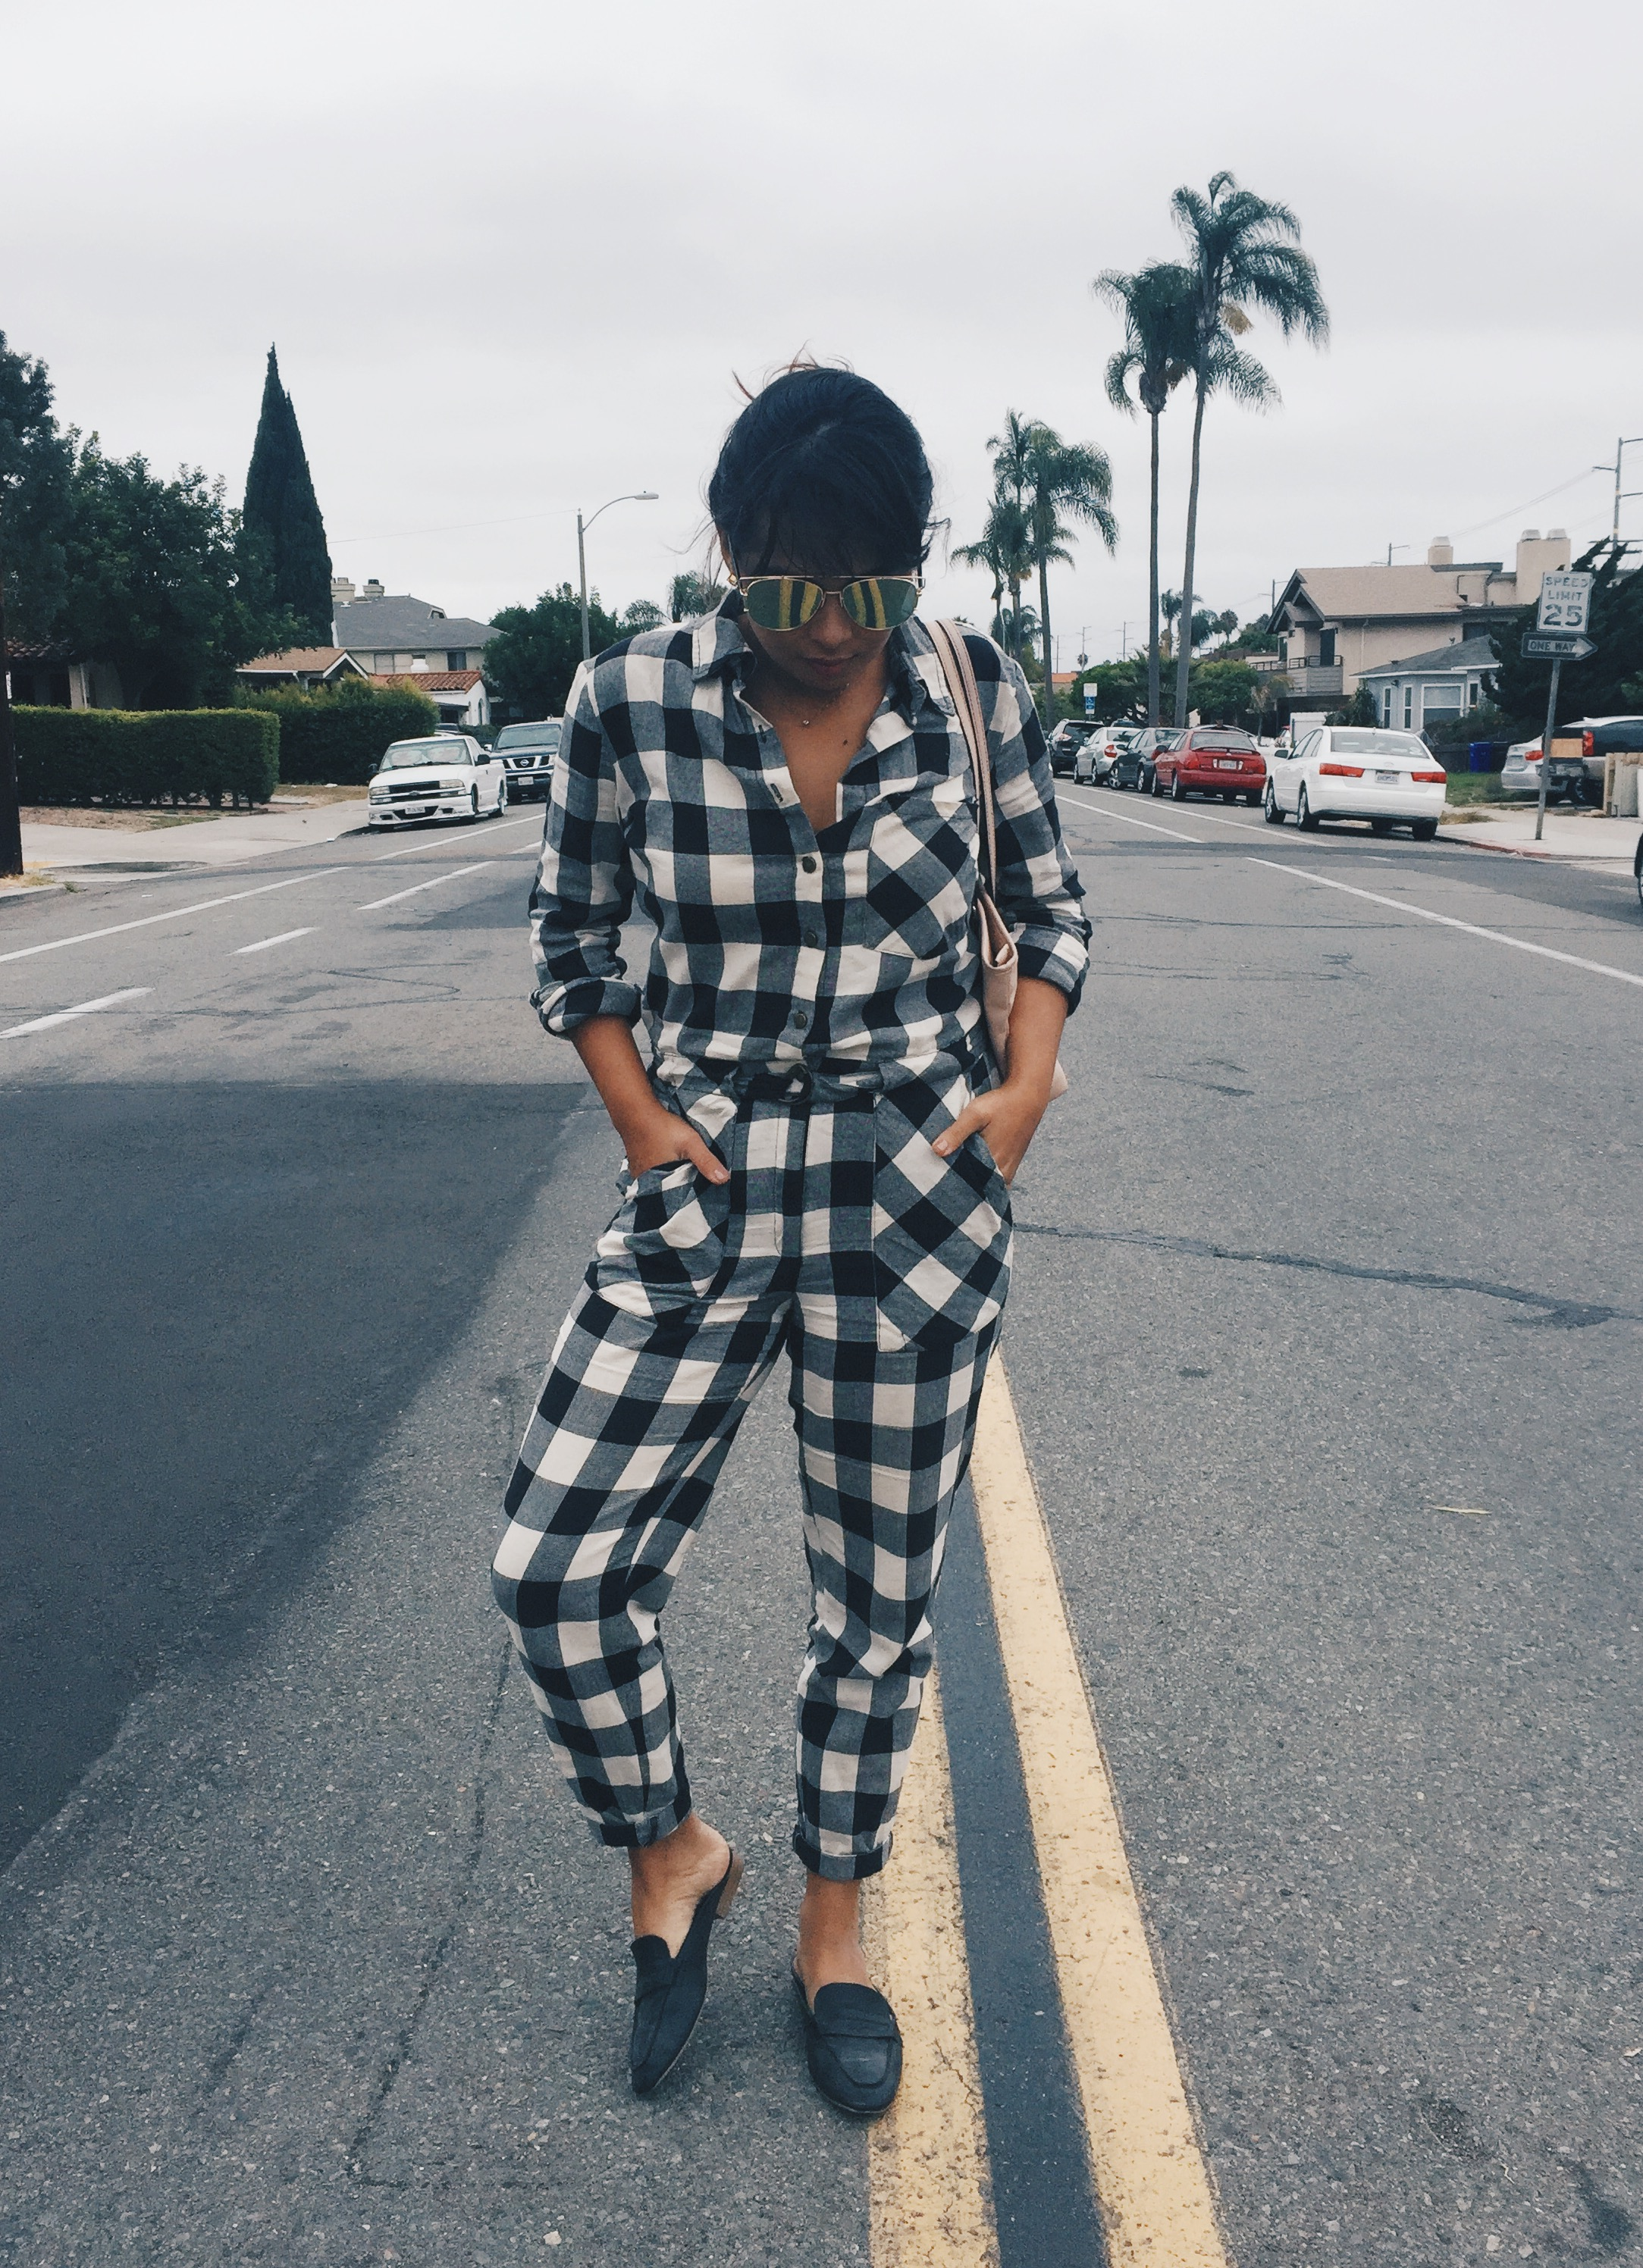 This jumpsuit is from Forever 21. I bought it over a year ago, but it's still available. Scroll down and you'll find it.